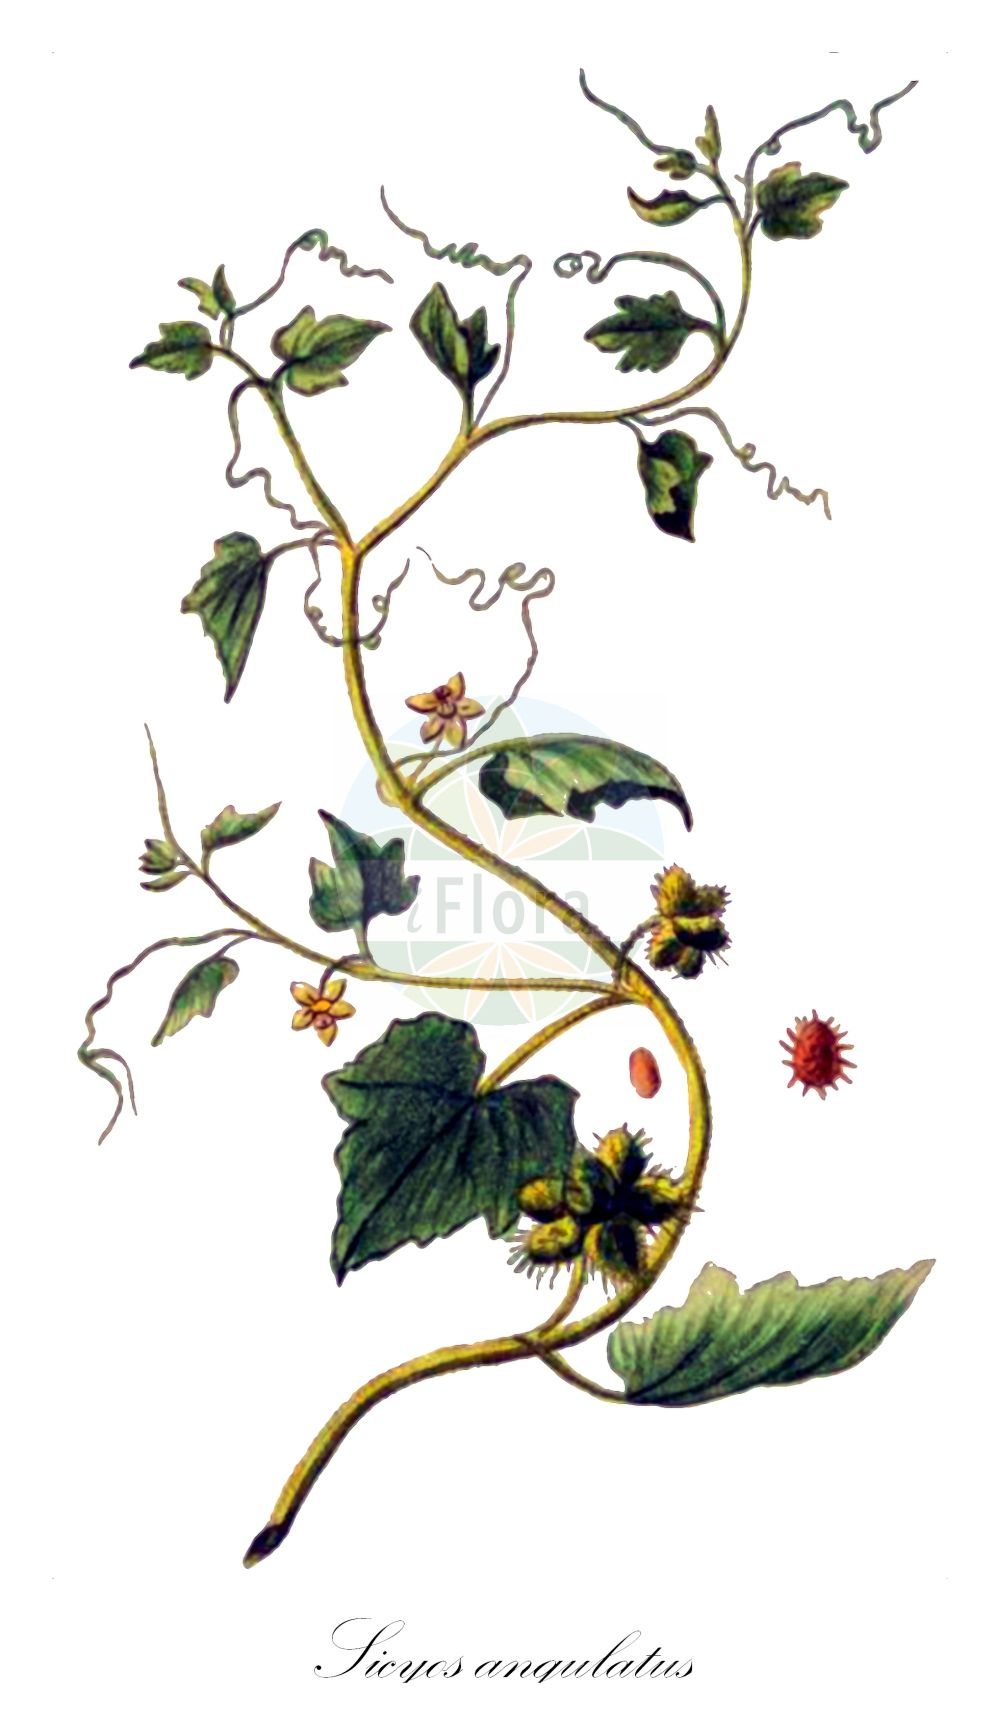 Historische Abbildung von Sicyos angulatus. Das Bild zeigt Blatt, Bluete, Frucht und Same. ---- Historical Drawing of Sicyos angulatus.The image is showing leaf, flower, fruit and seed.(Sicyos angulatus,Sicyos,Cucurbitaceae,Kuerbisgewaechse,Cucurbit family,Blatt,Bluete,Frucht,Same,leaf,flower,fruit,seed,Bonelli (1771-1793))